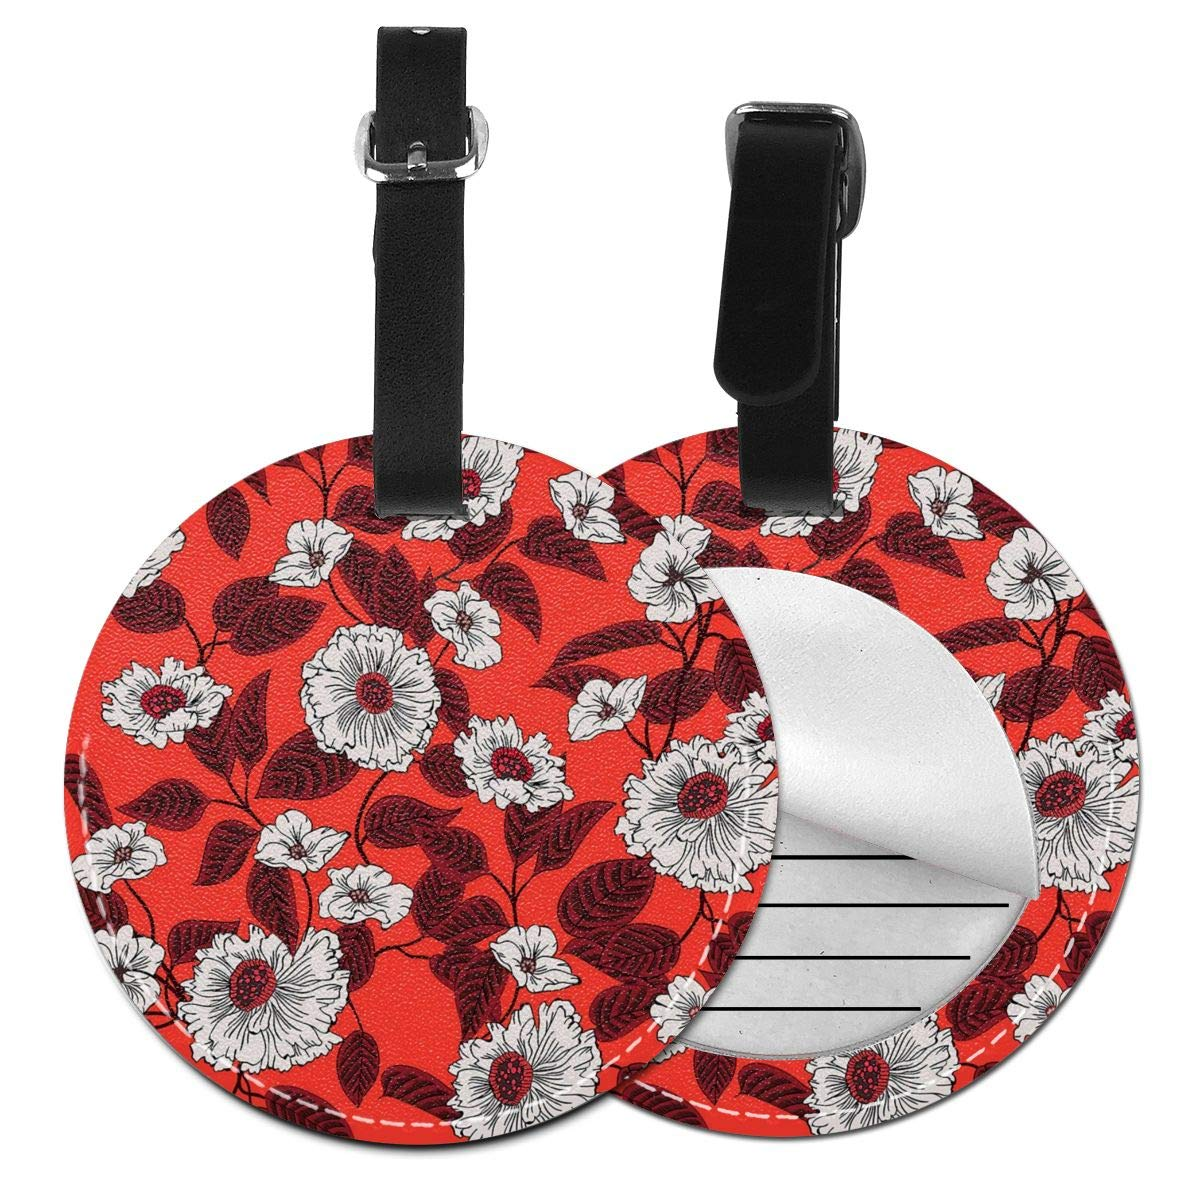 RITGOWWV PU Leather Luggage Tags 3D Print Floral Pattern Flowers and Leaves Suitcase Labels Bag Travel Accessories